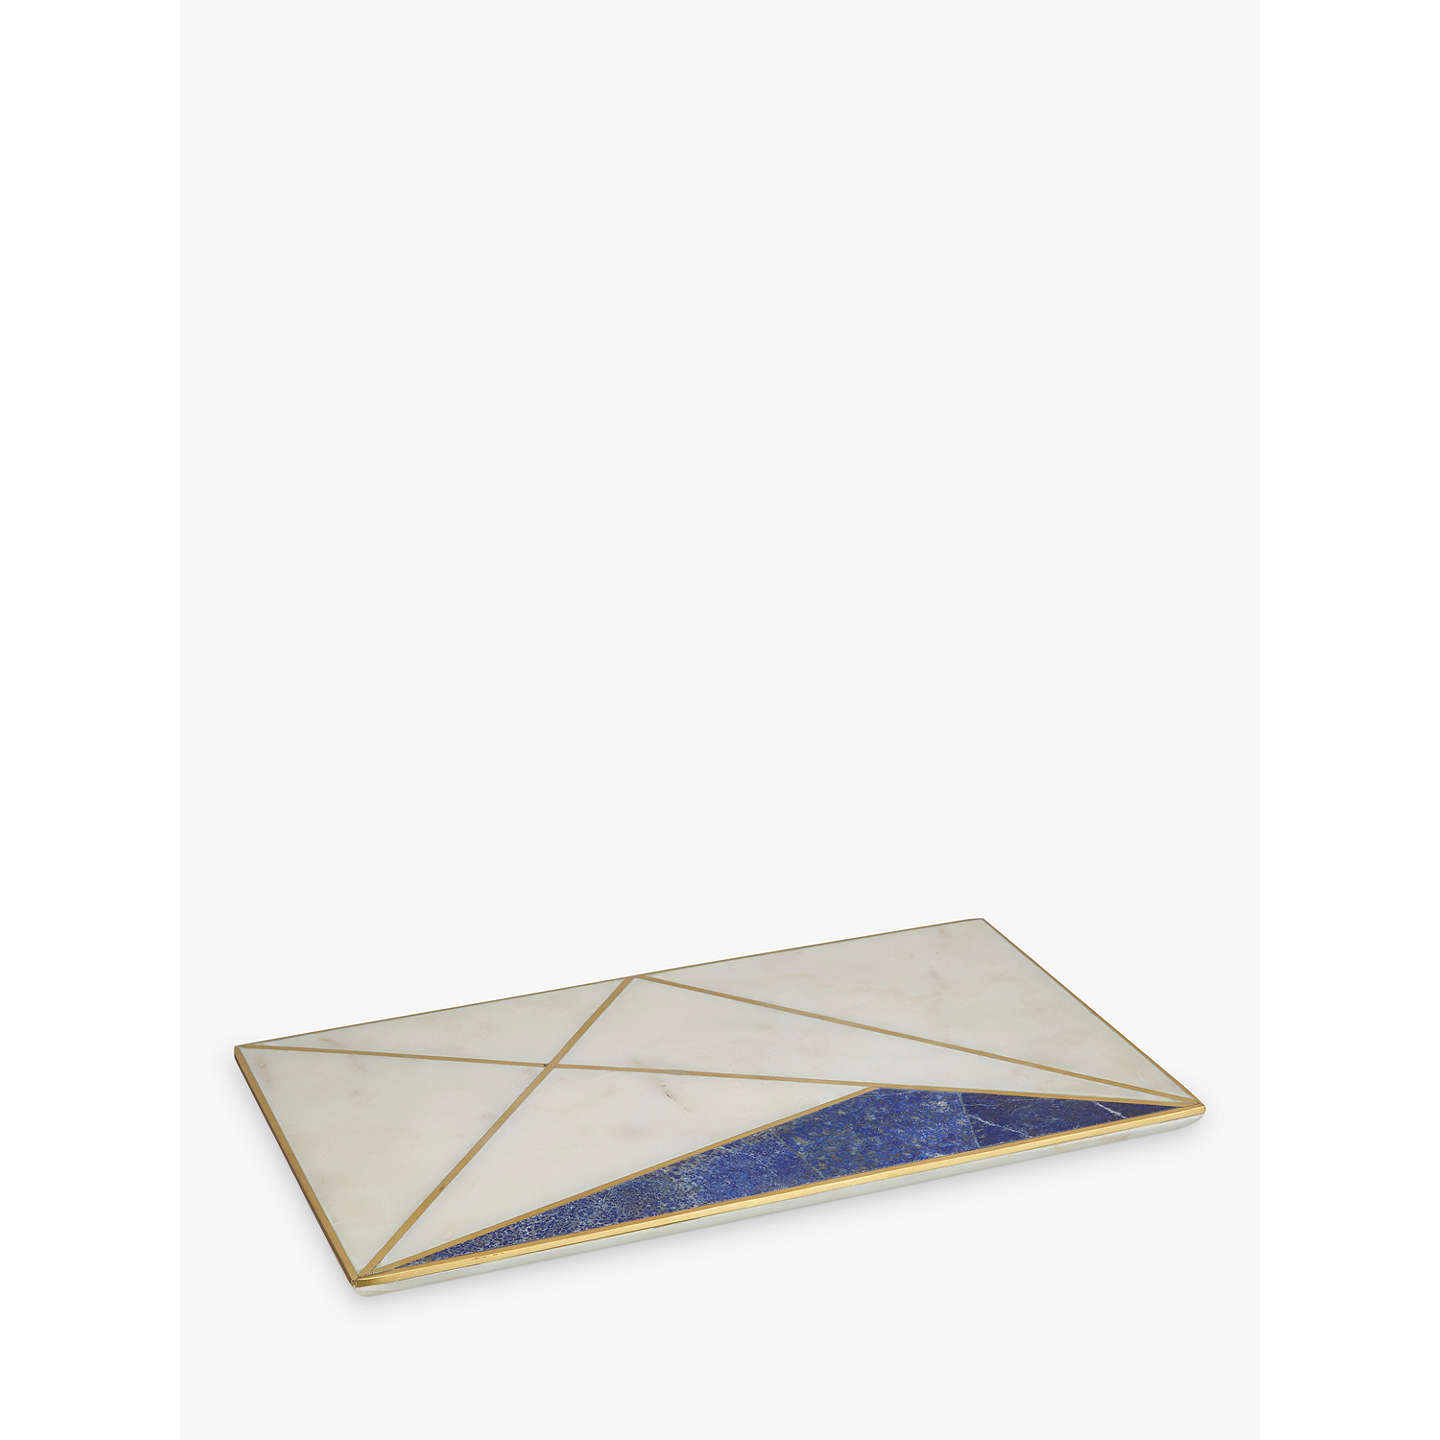 BuyJohn Lewis Marble and Lapis Platter, White/Blue Online at johnlewis.com